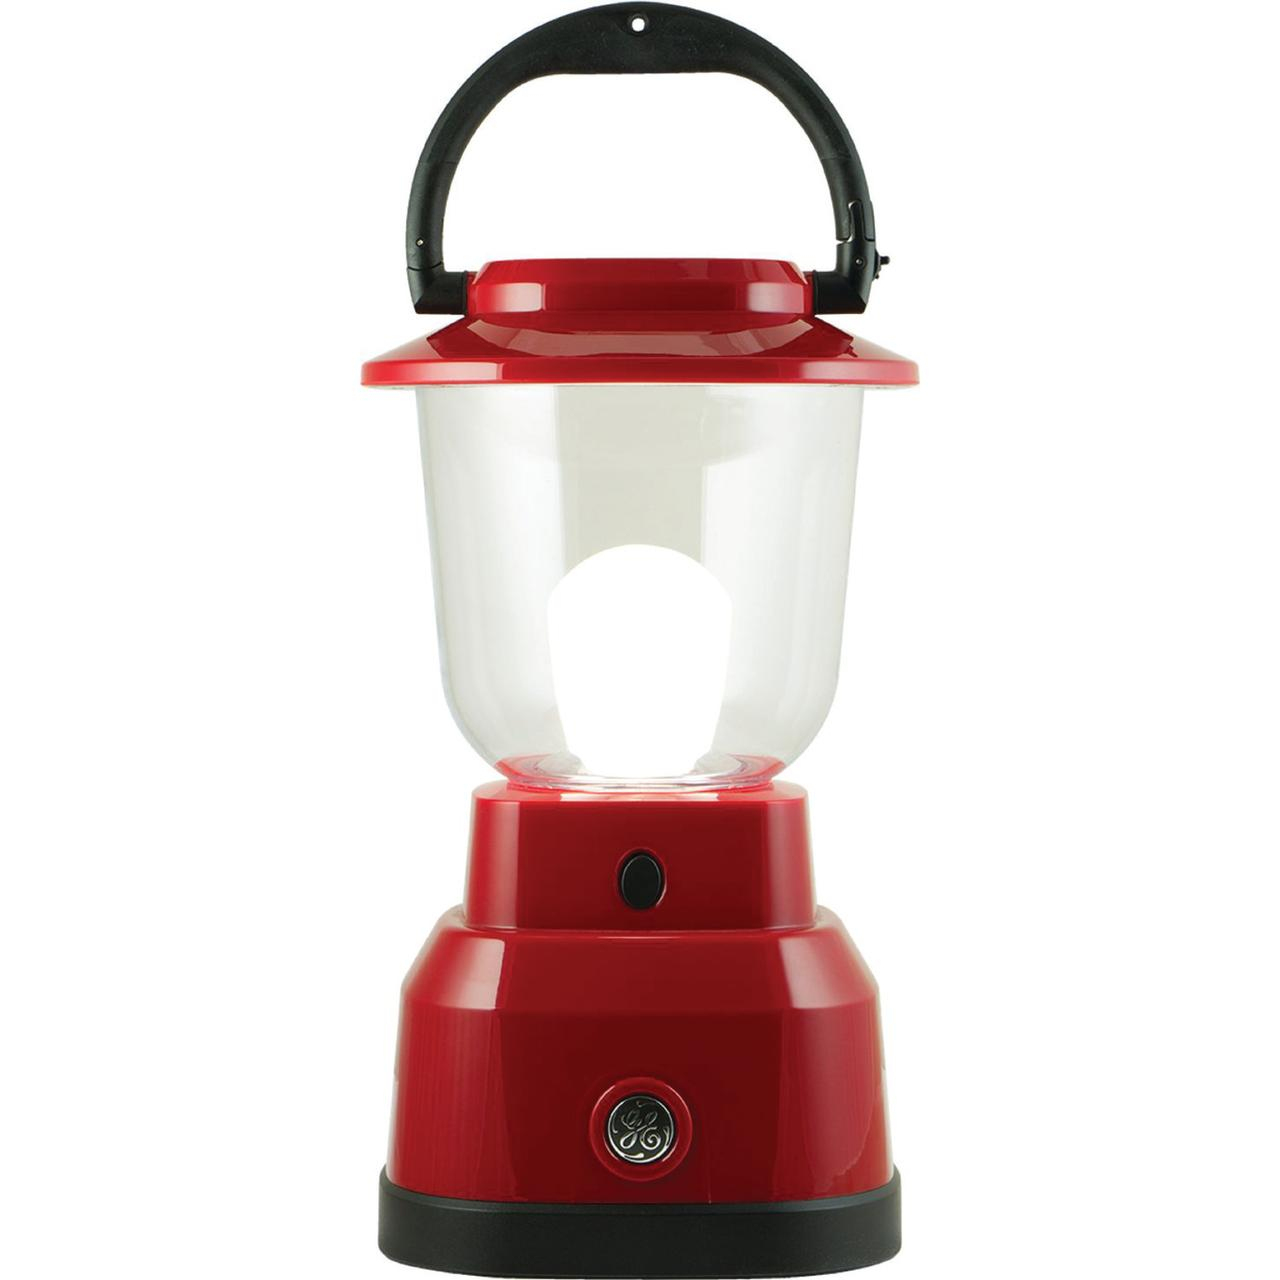 Ge Enbrighten Outdoor Led Lantern, Usb Port, Battery Operated, Red - Ultra Bright Led Lantern With Usb Wiring Diagram